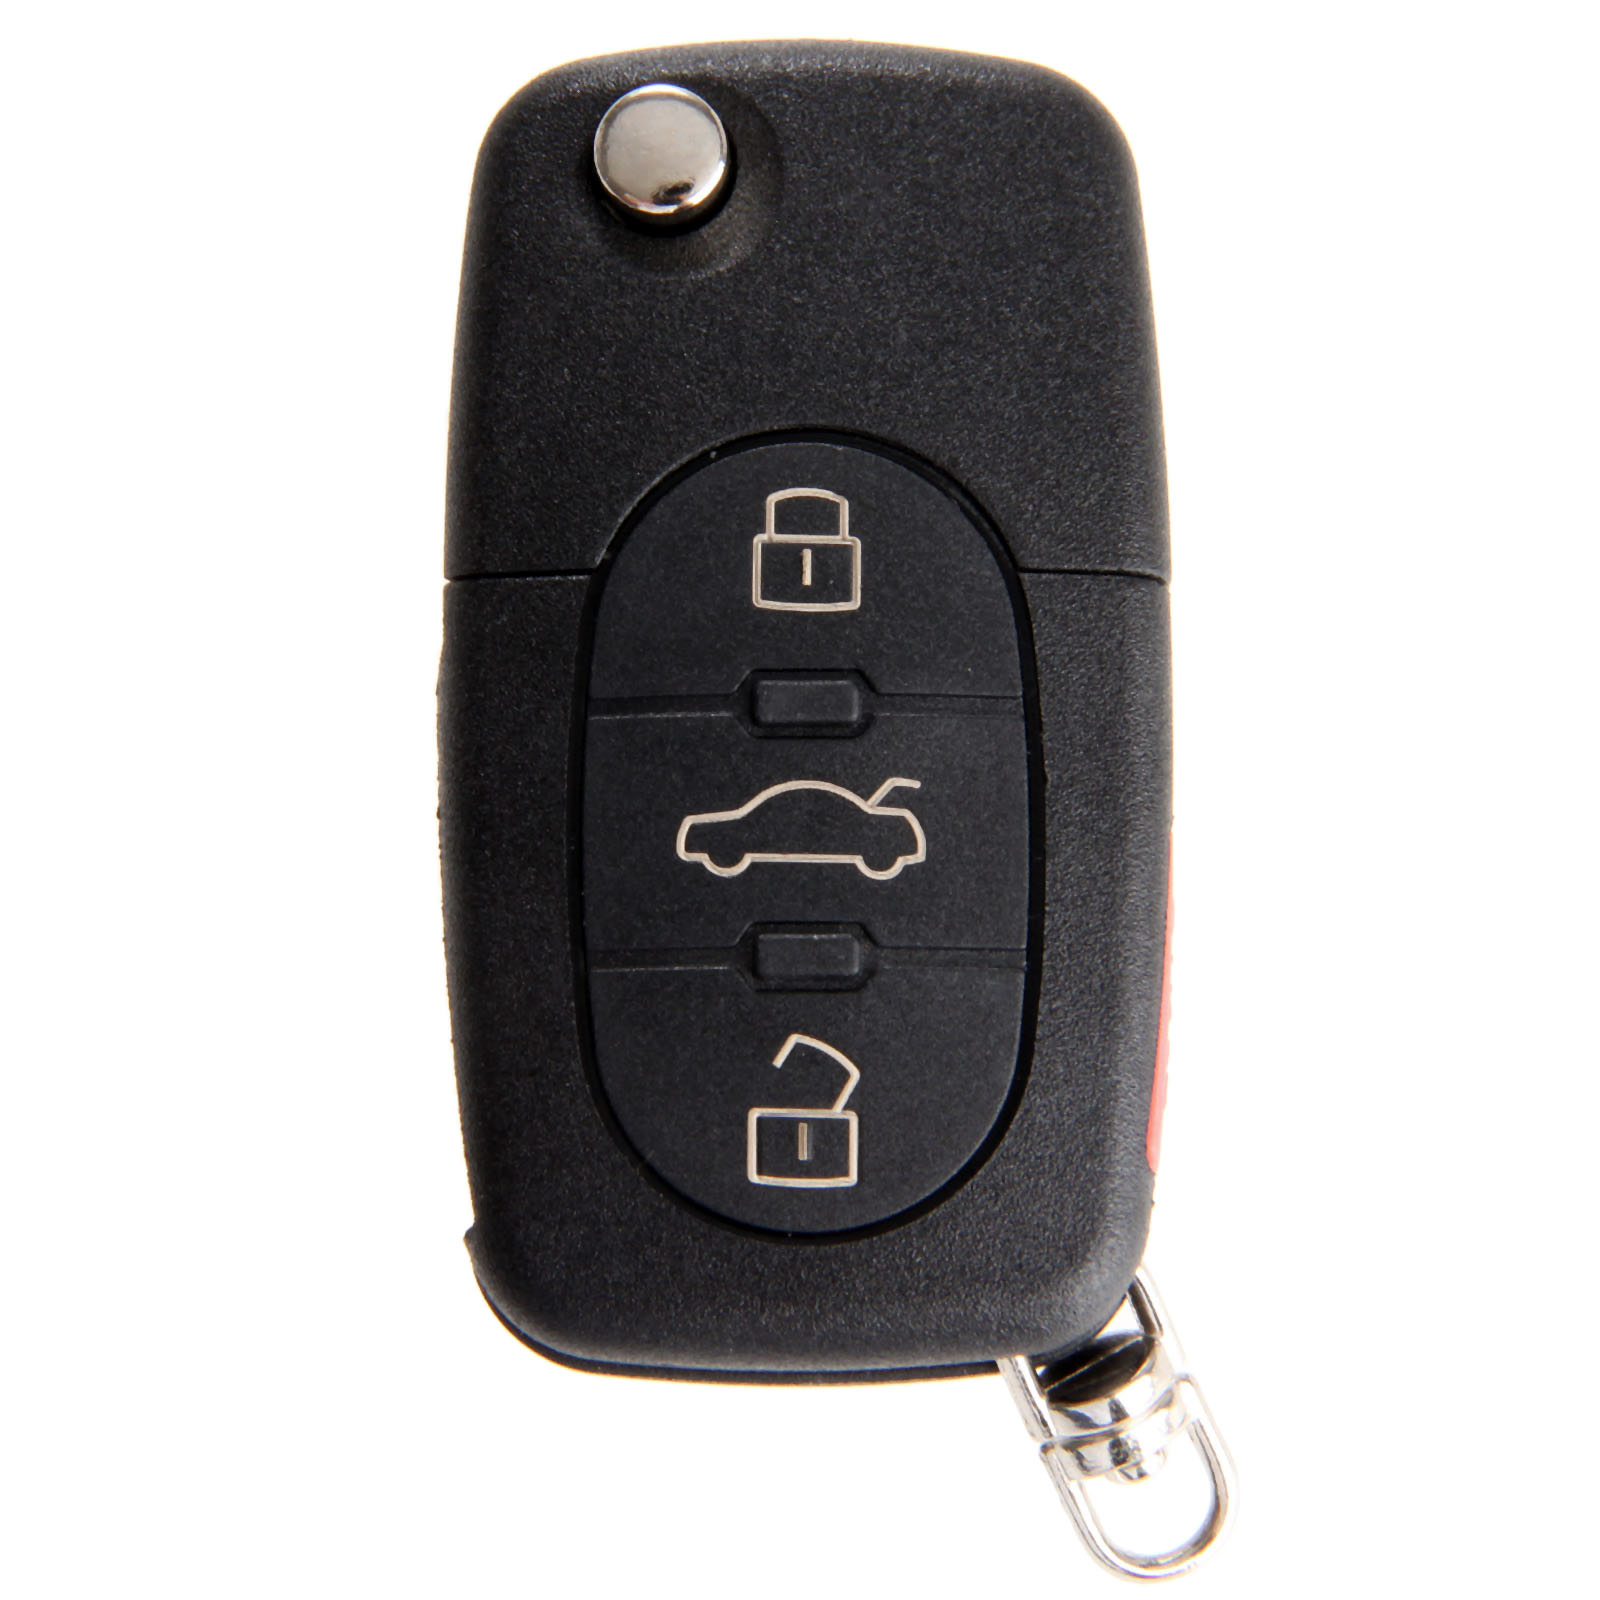 4 Buttons Remote Flip Folding Key Shell Case For Audi A4 A6 A8 Quattro TT S4 S8 CR2032 Replacement Keyless Fob-in Car Key from Automobiles & Motorcycles